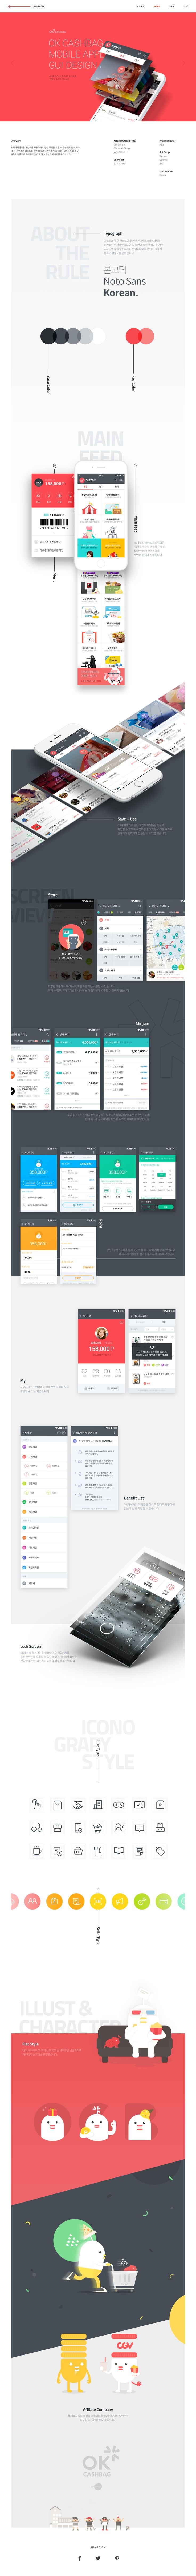 다음 @Behance 프로젝트 확인: u201cSKP OK Cashbag Mobile APP Design.u201d https://www.behance.net/gallery/49773495/SKP-OK-Cashbag-Mobile-APP-Design